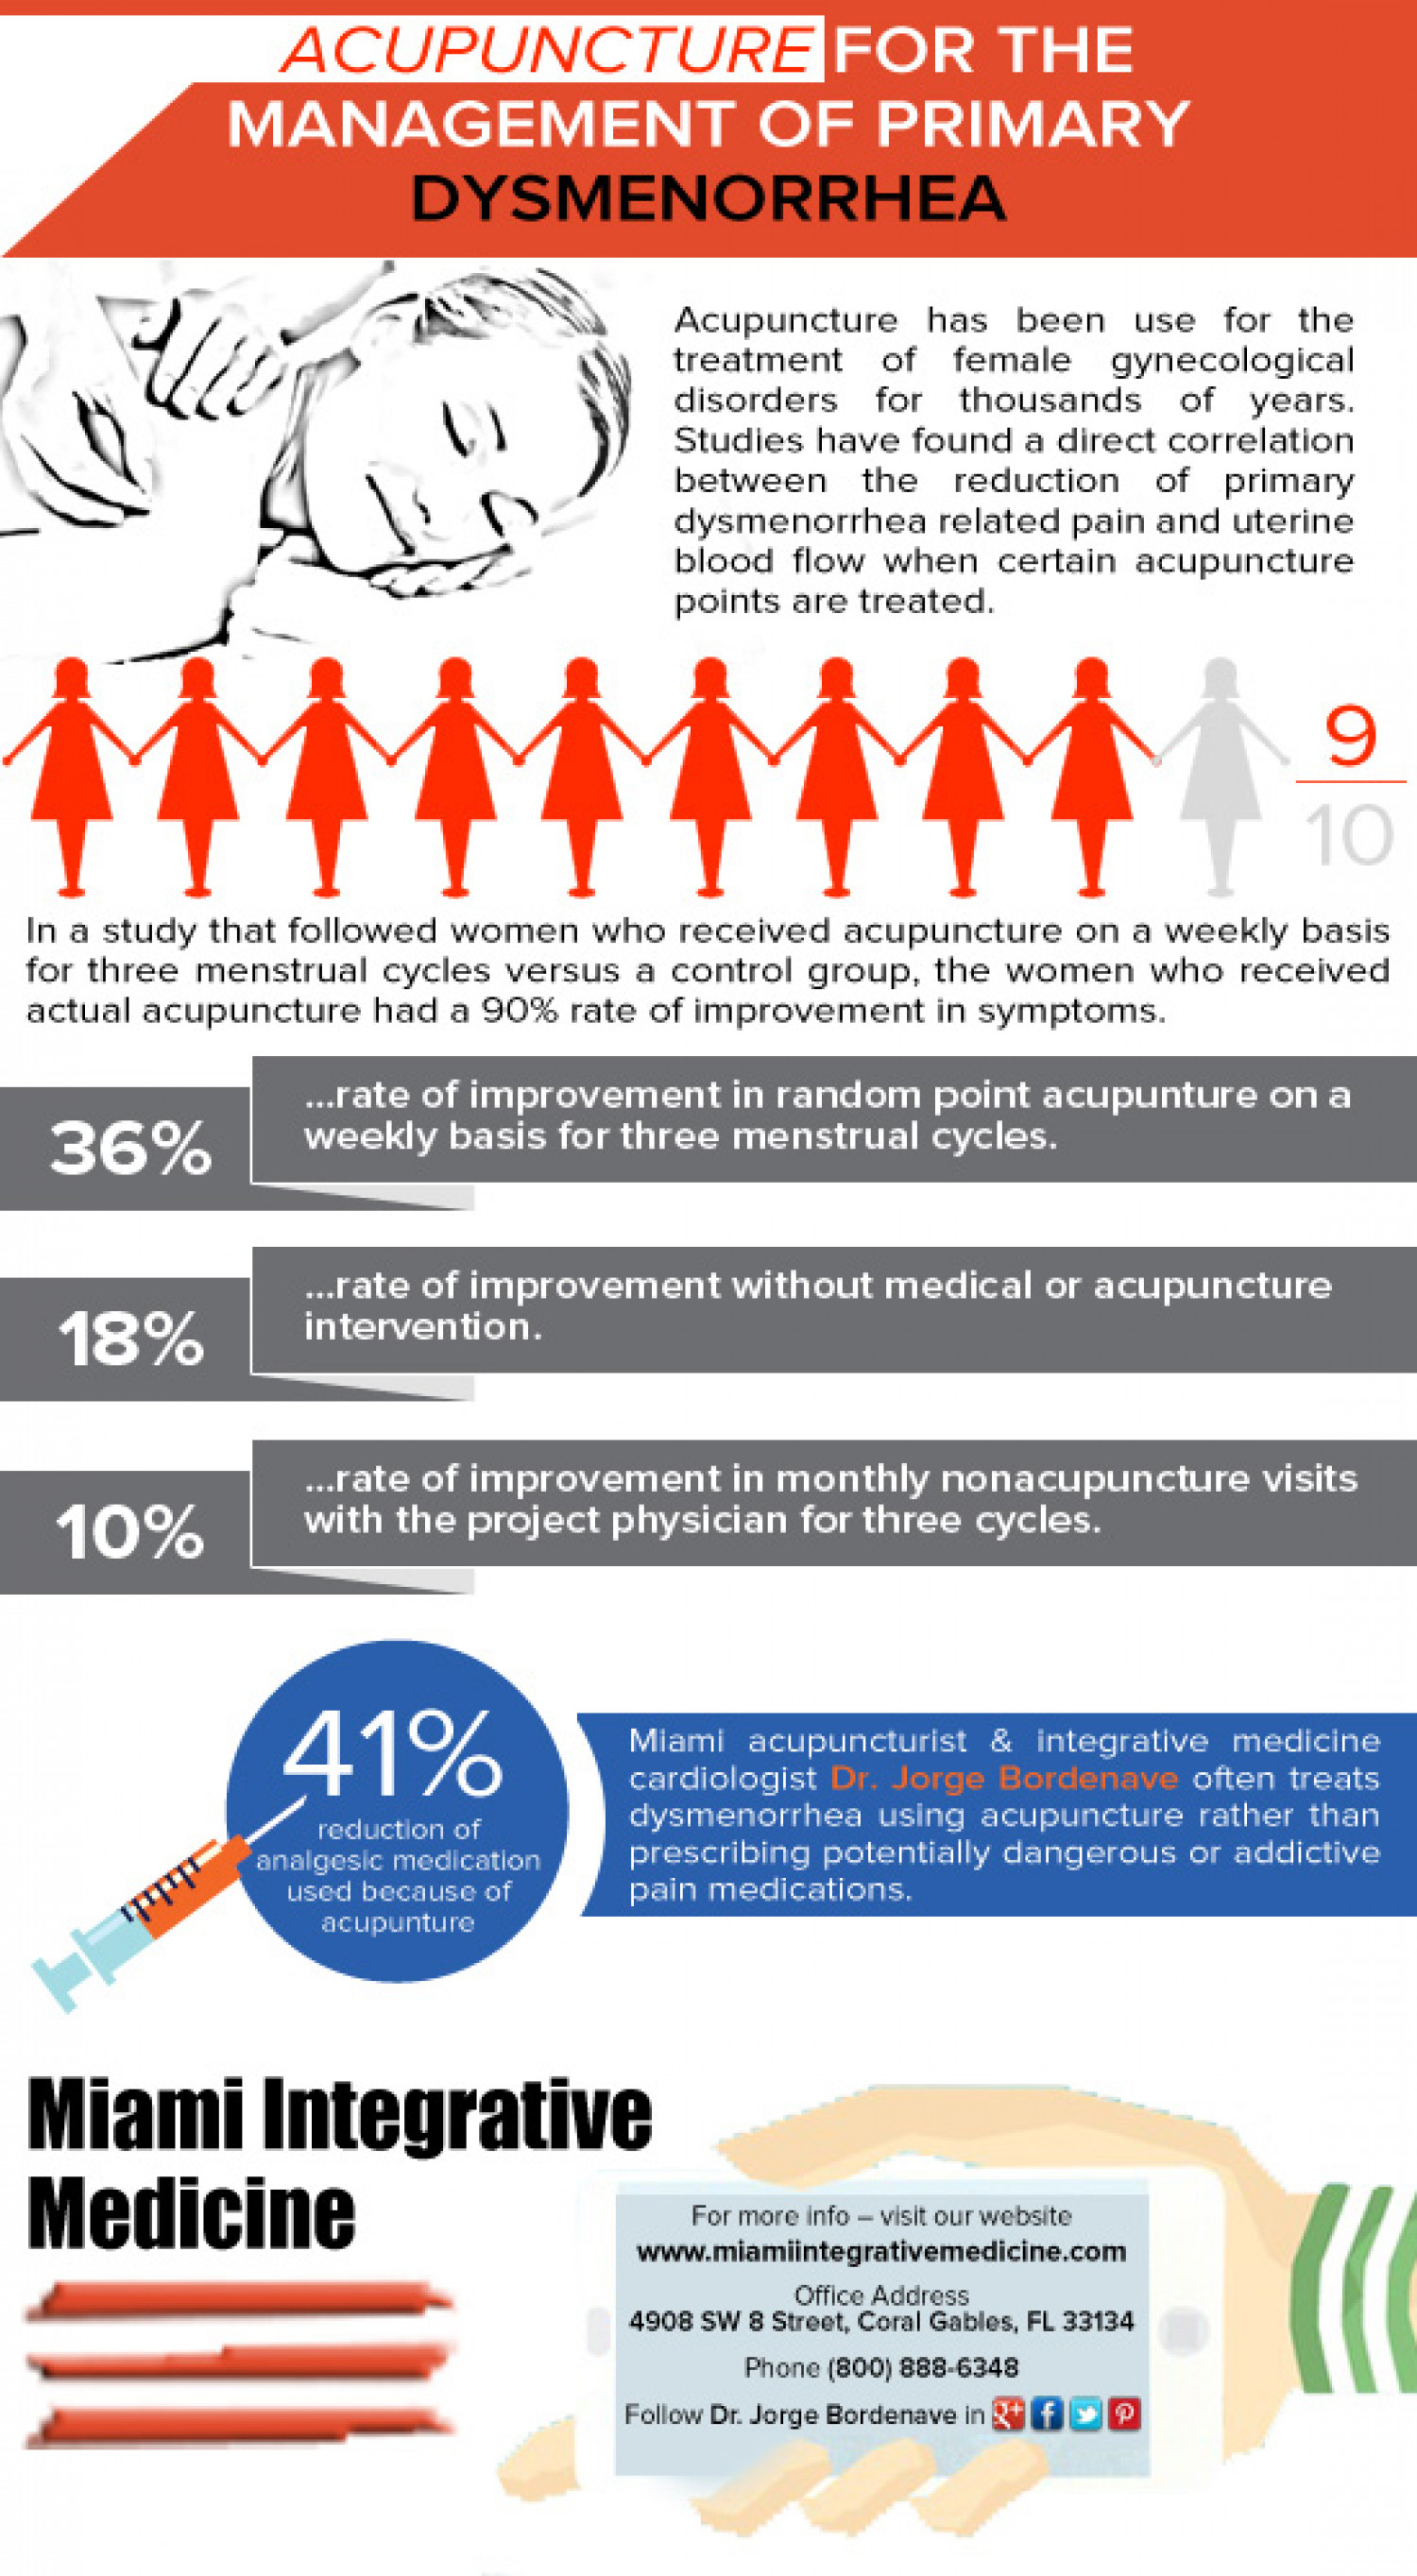 Acupuncture For The Management of Primary Dysmenorrhea Infographic